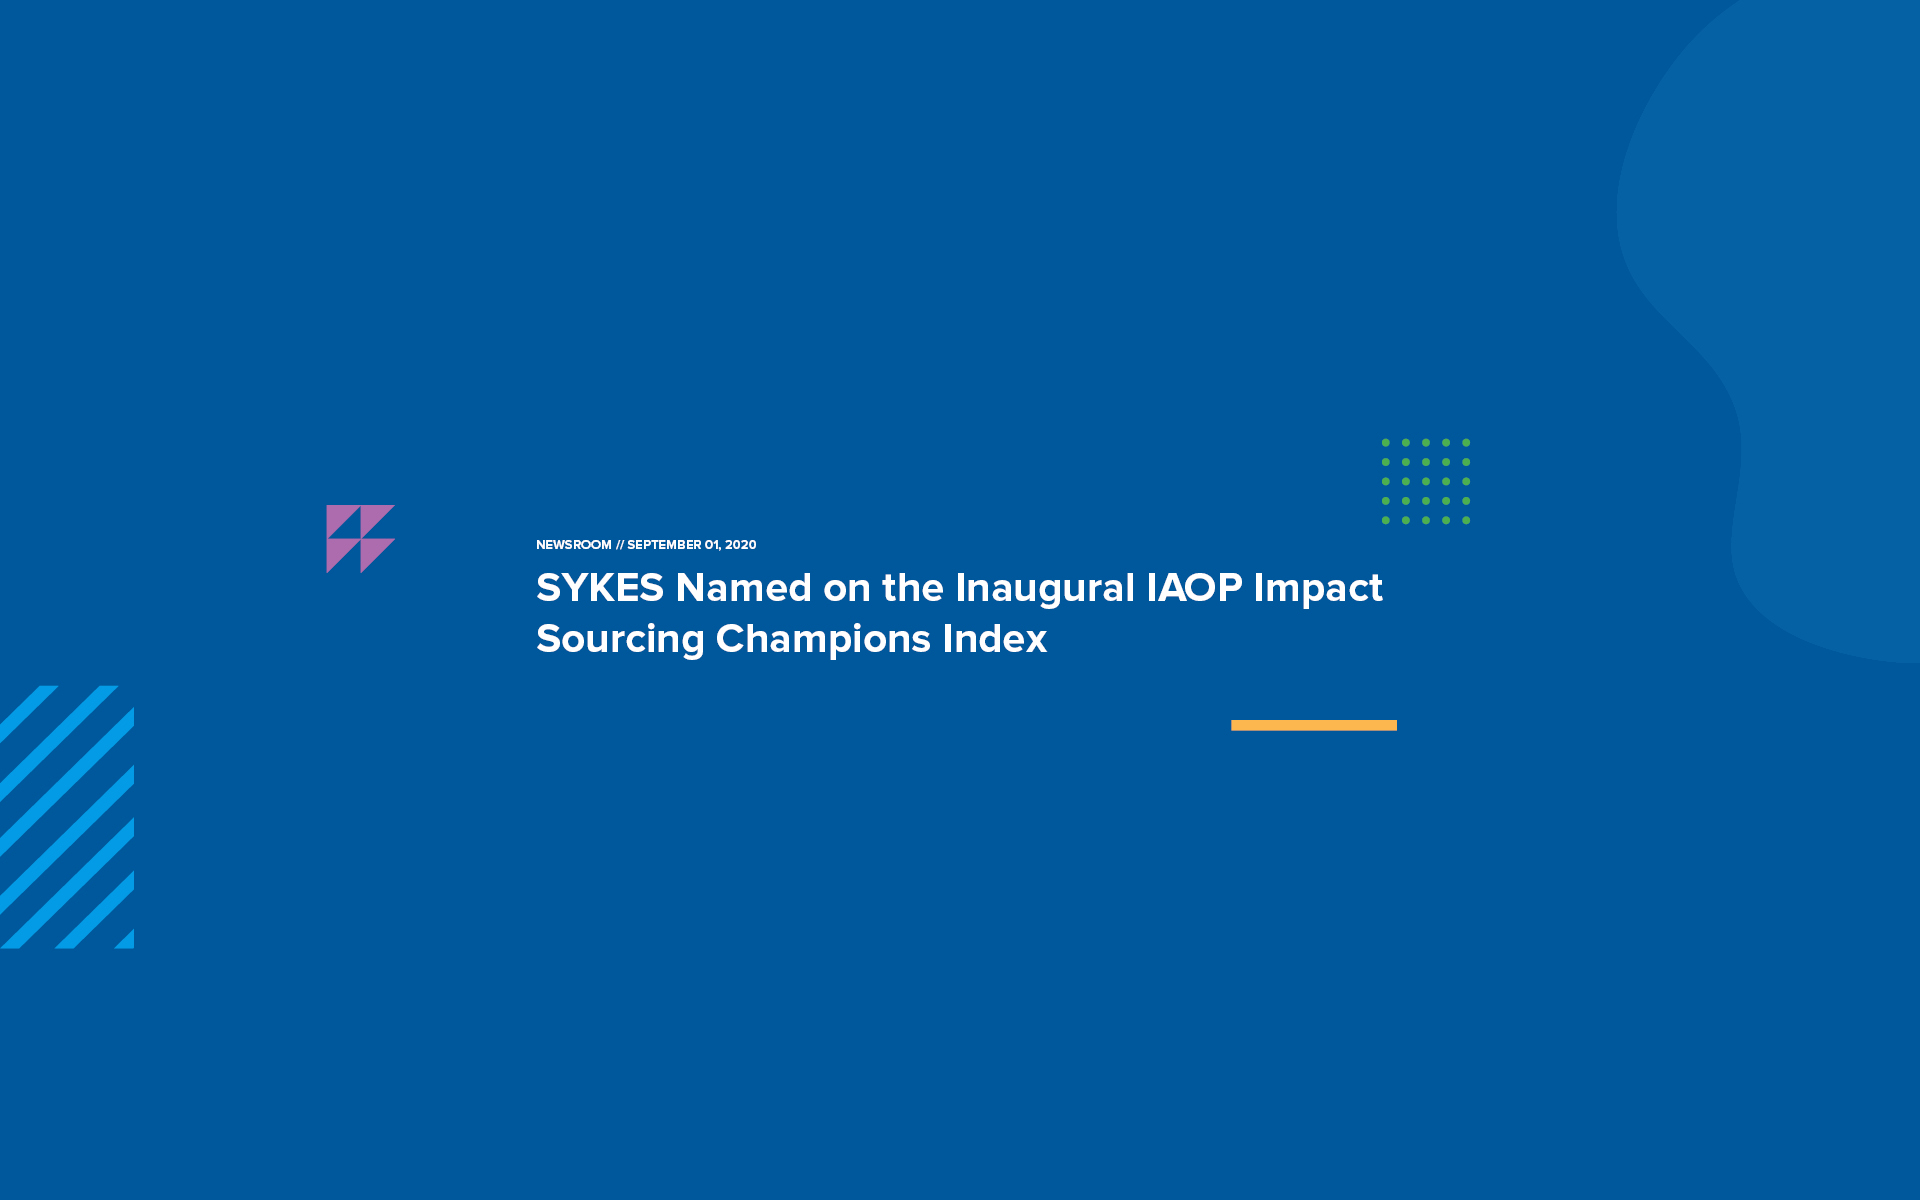 SYKES Named IAOP Impact Sourcing Champion